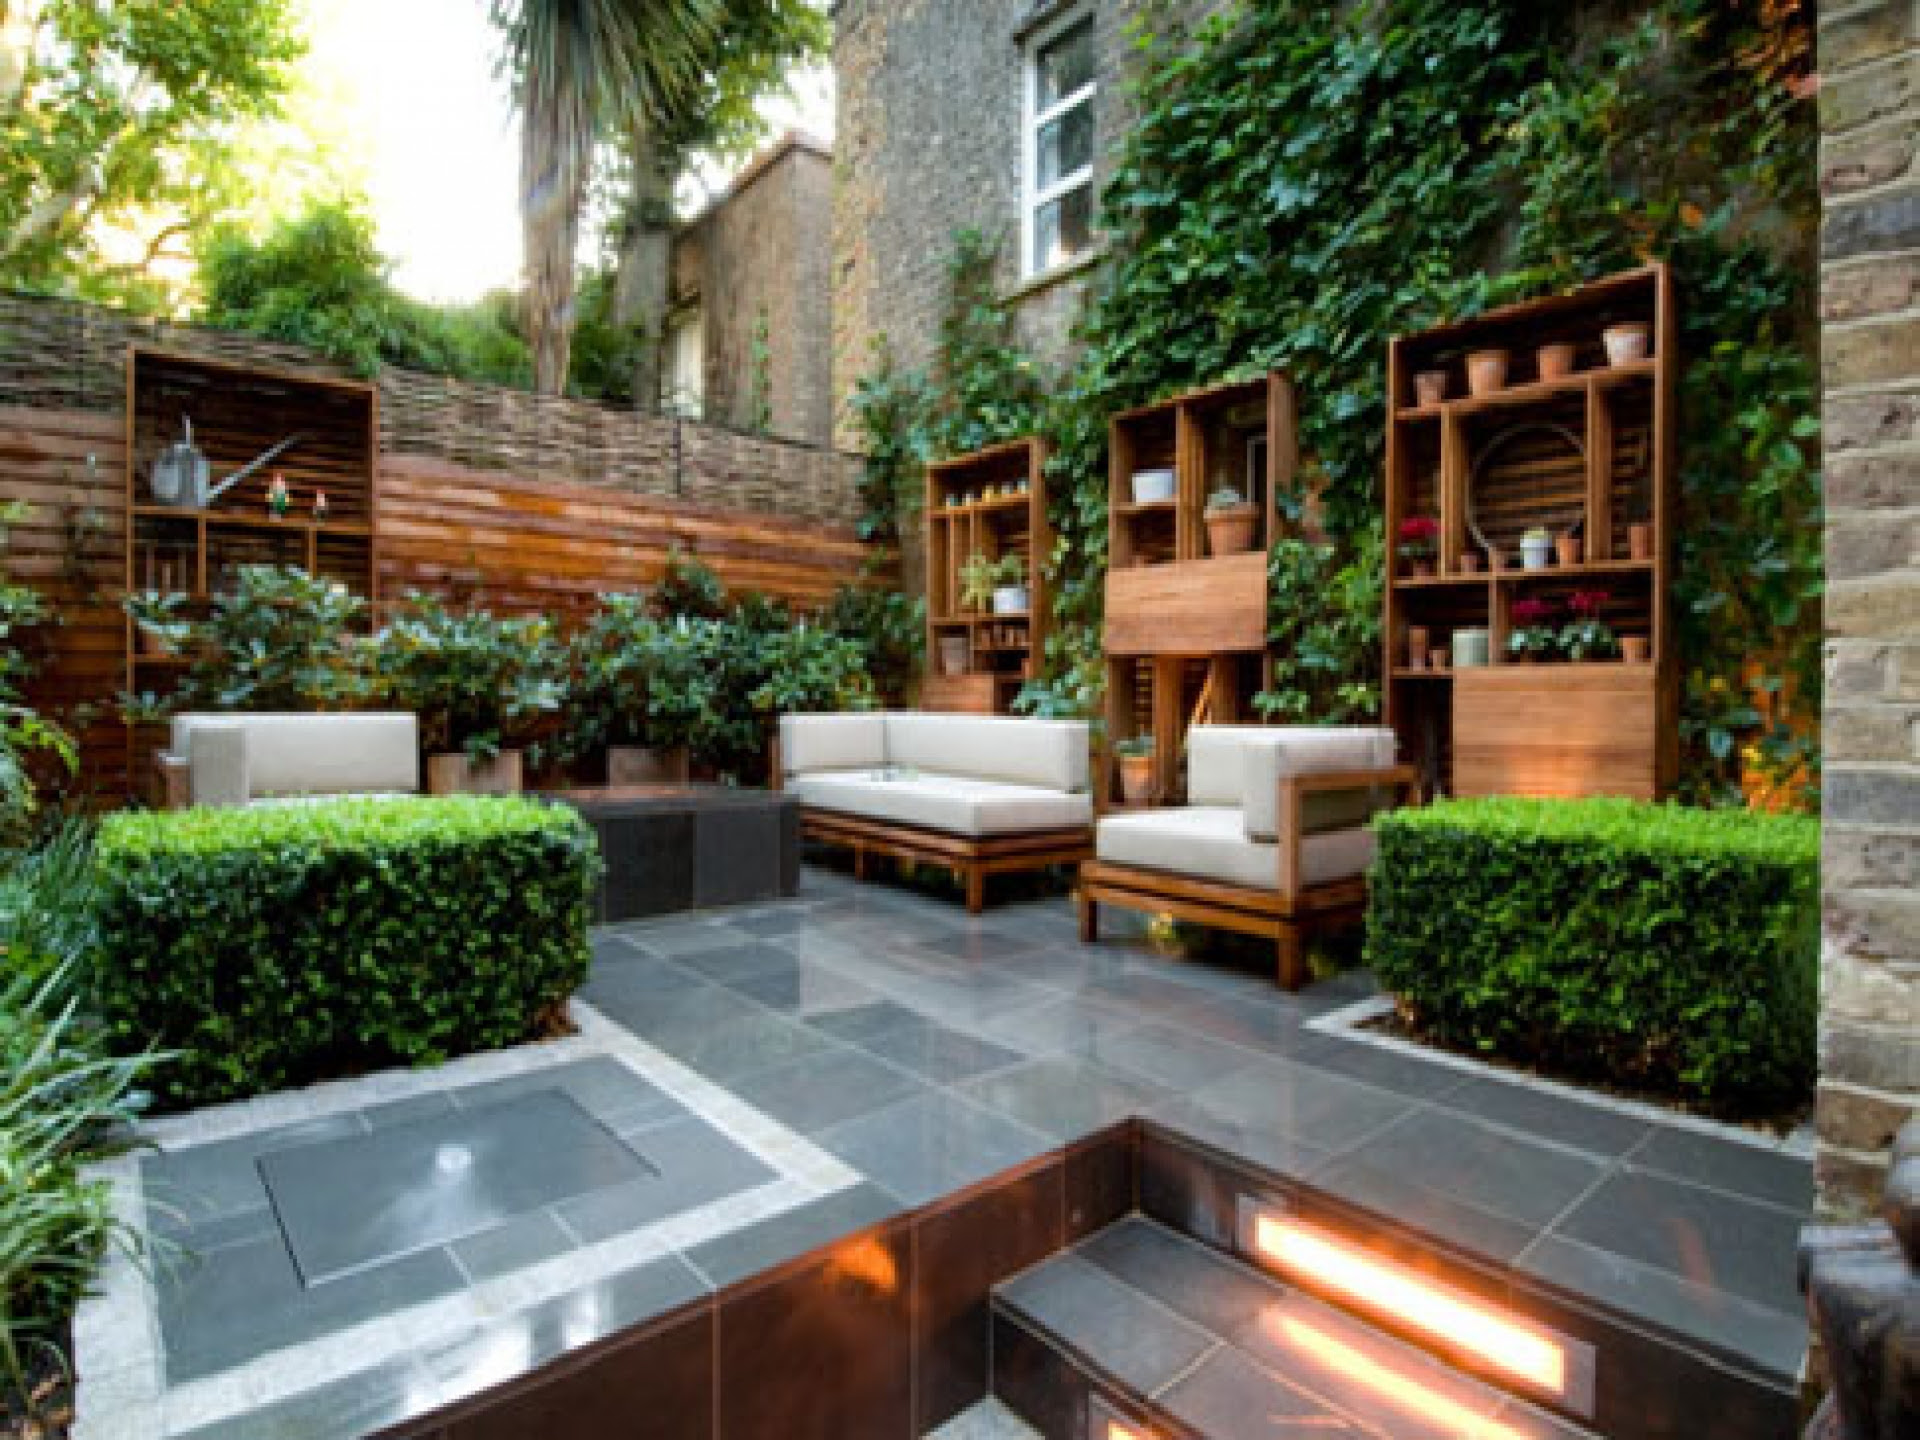 35 Outdoor Design For Your Home - The WoW Style